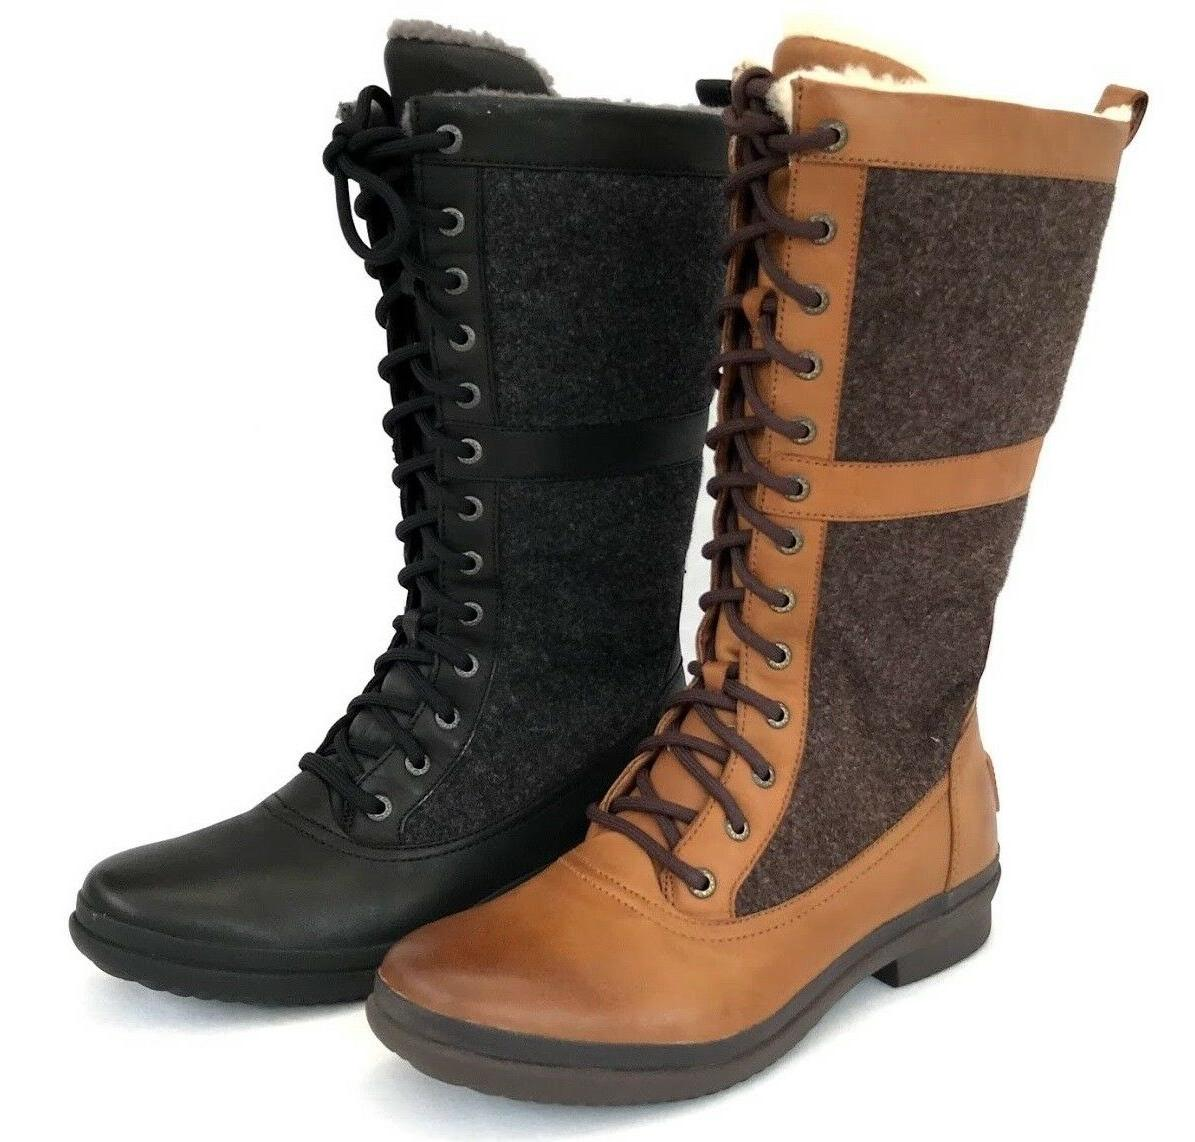 e3869131c4b Ugg Elvia Women's Lace up Waterproof Leather and Wool Lining Rubber Sole  Boots